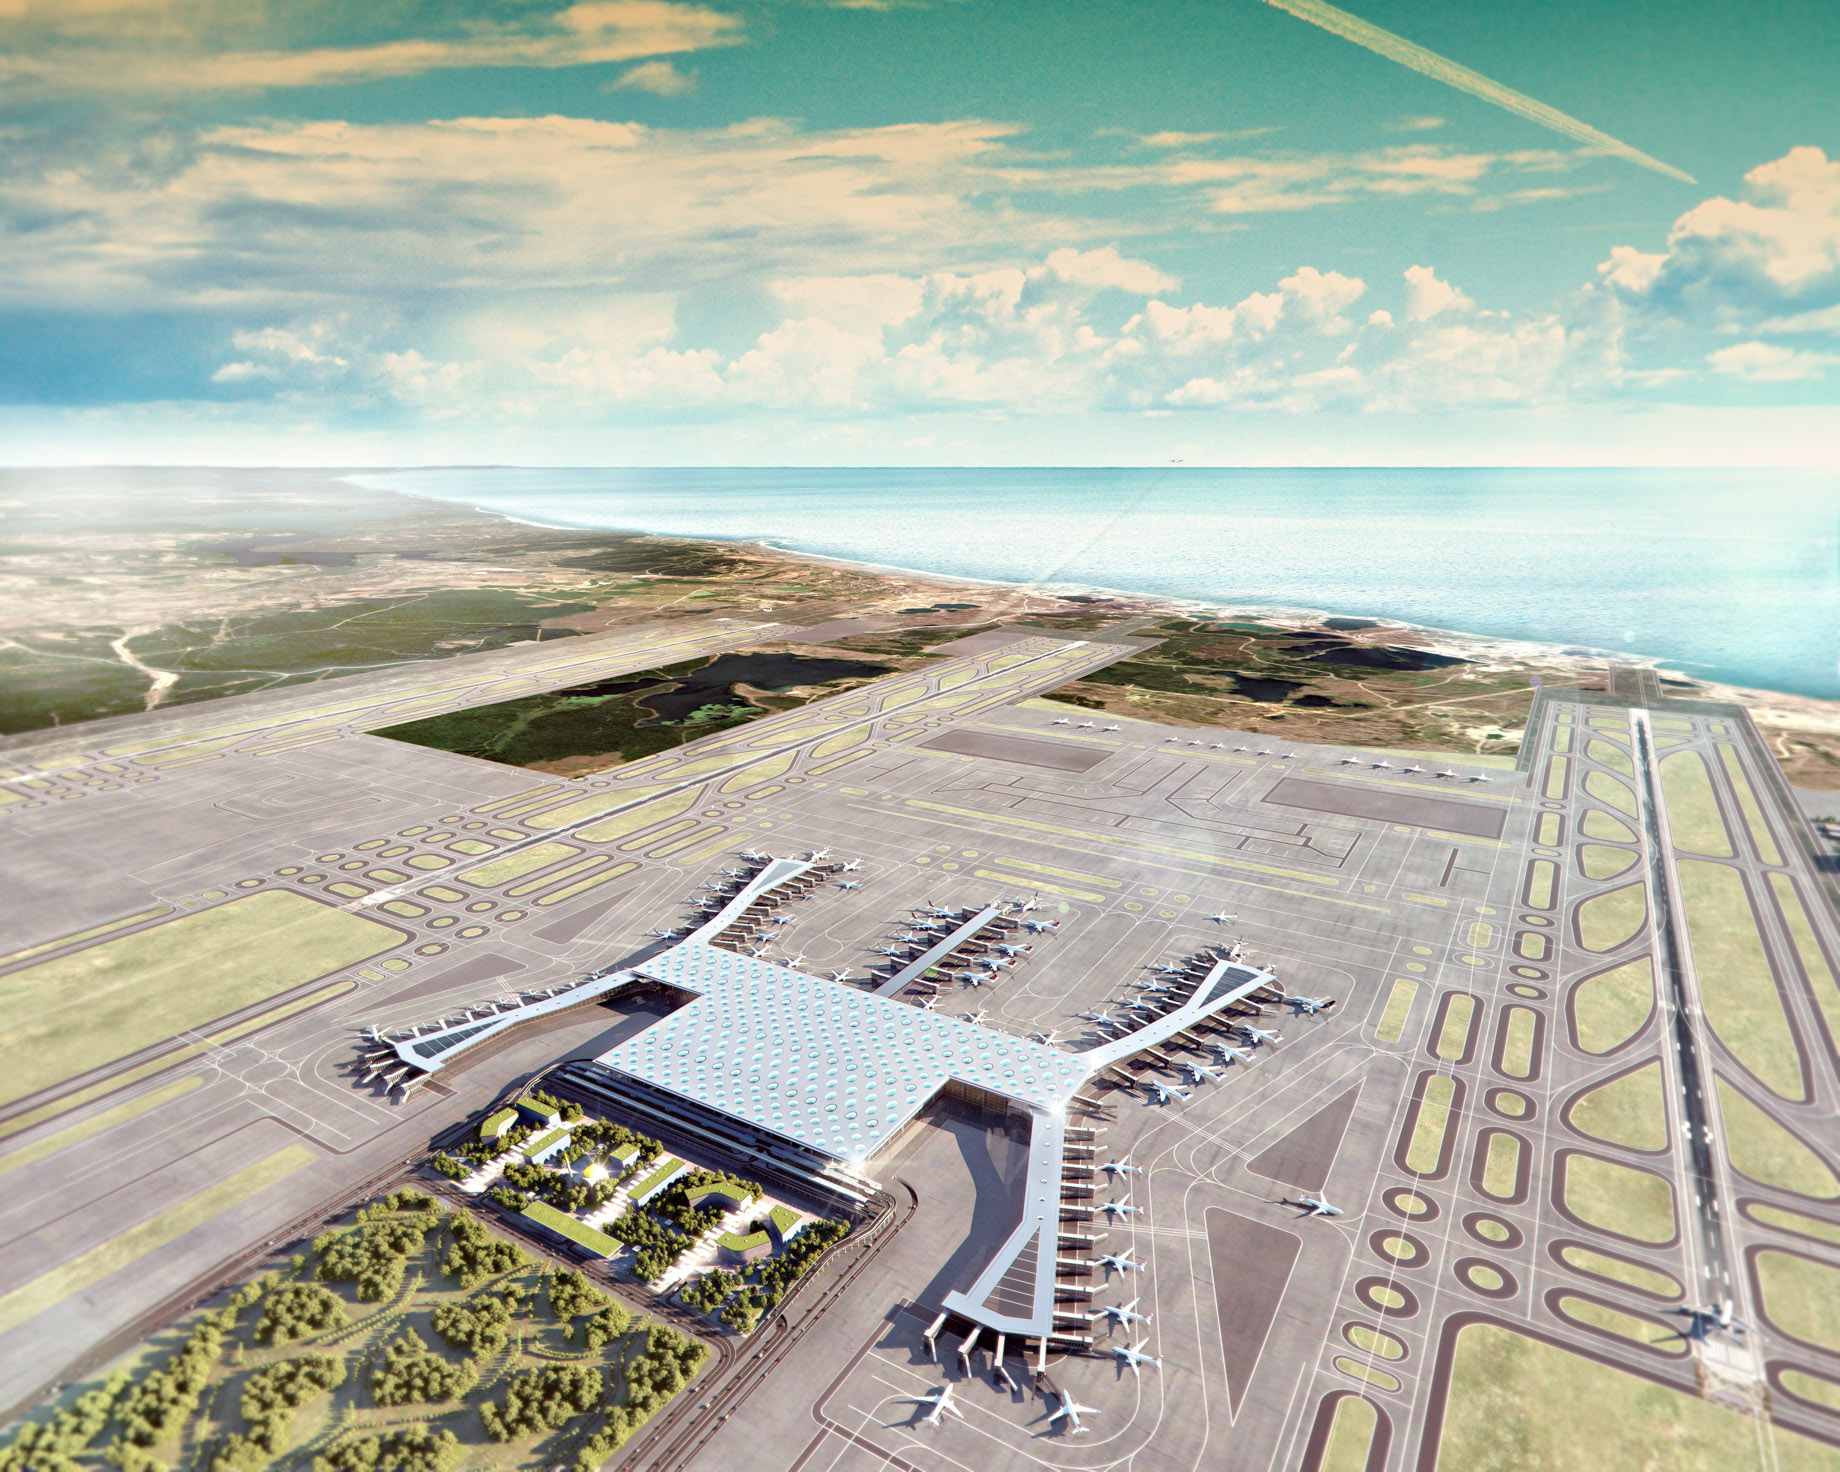 Aerial View - New International Airport in Istanbul, Turkey will be a Modern Architectural Masterpiece